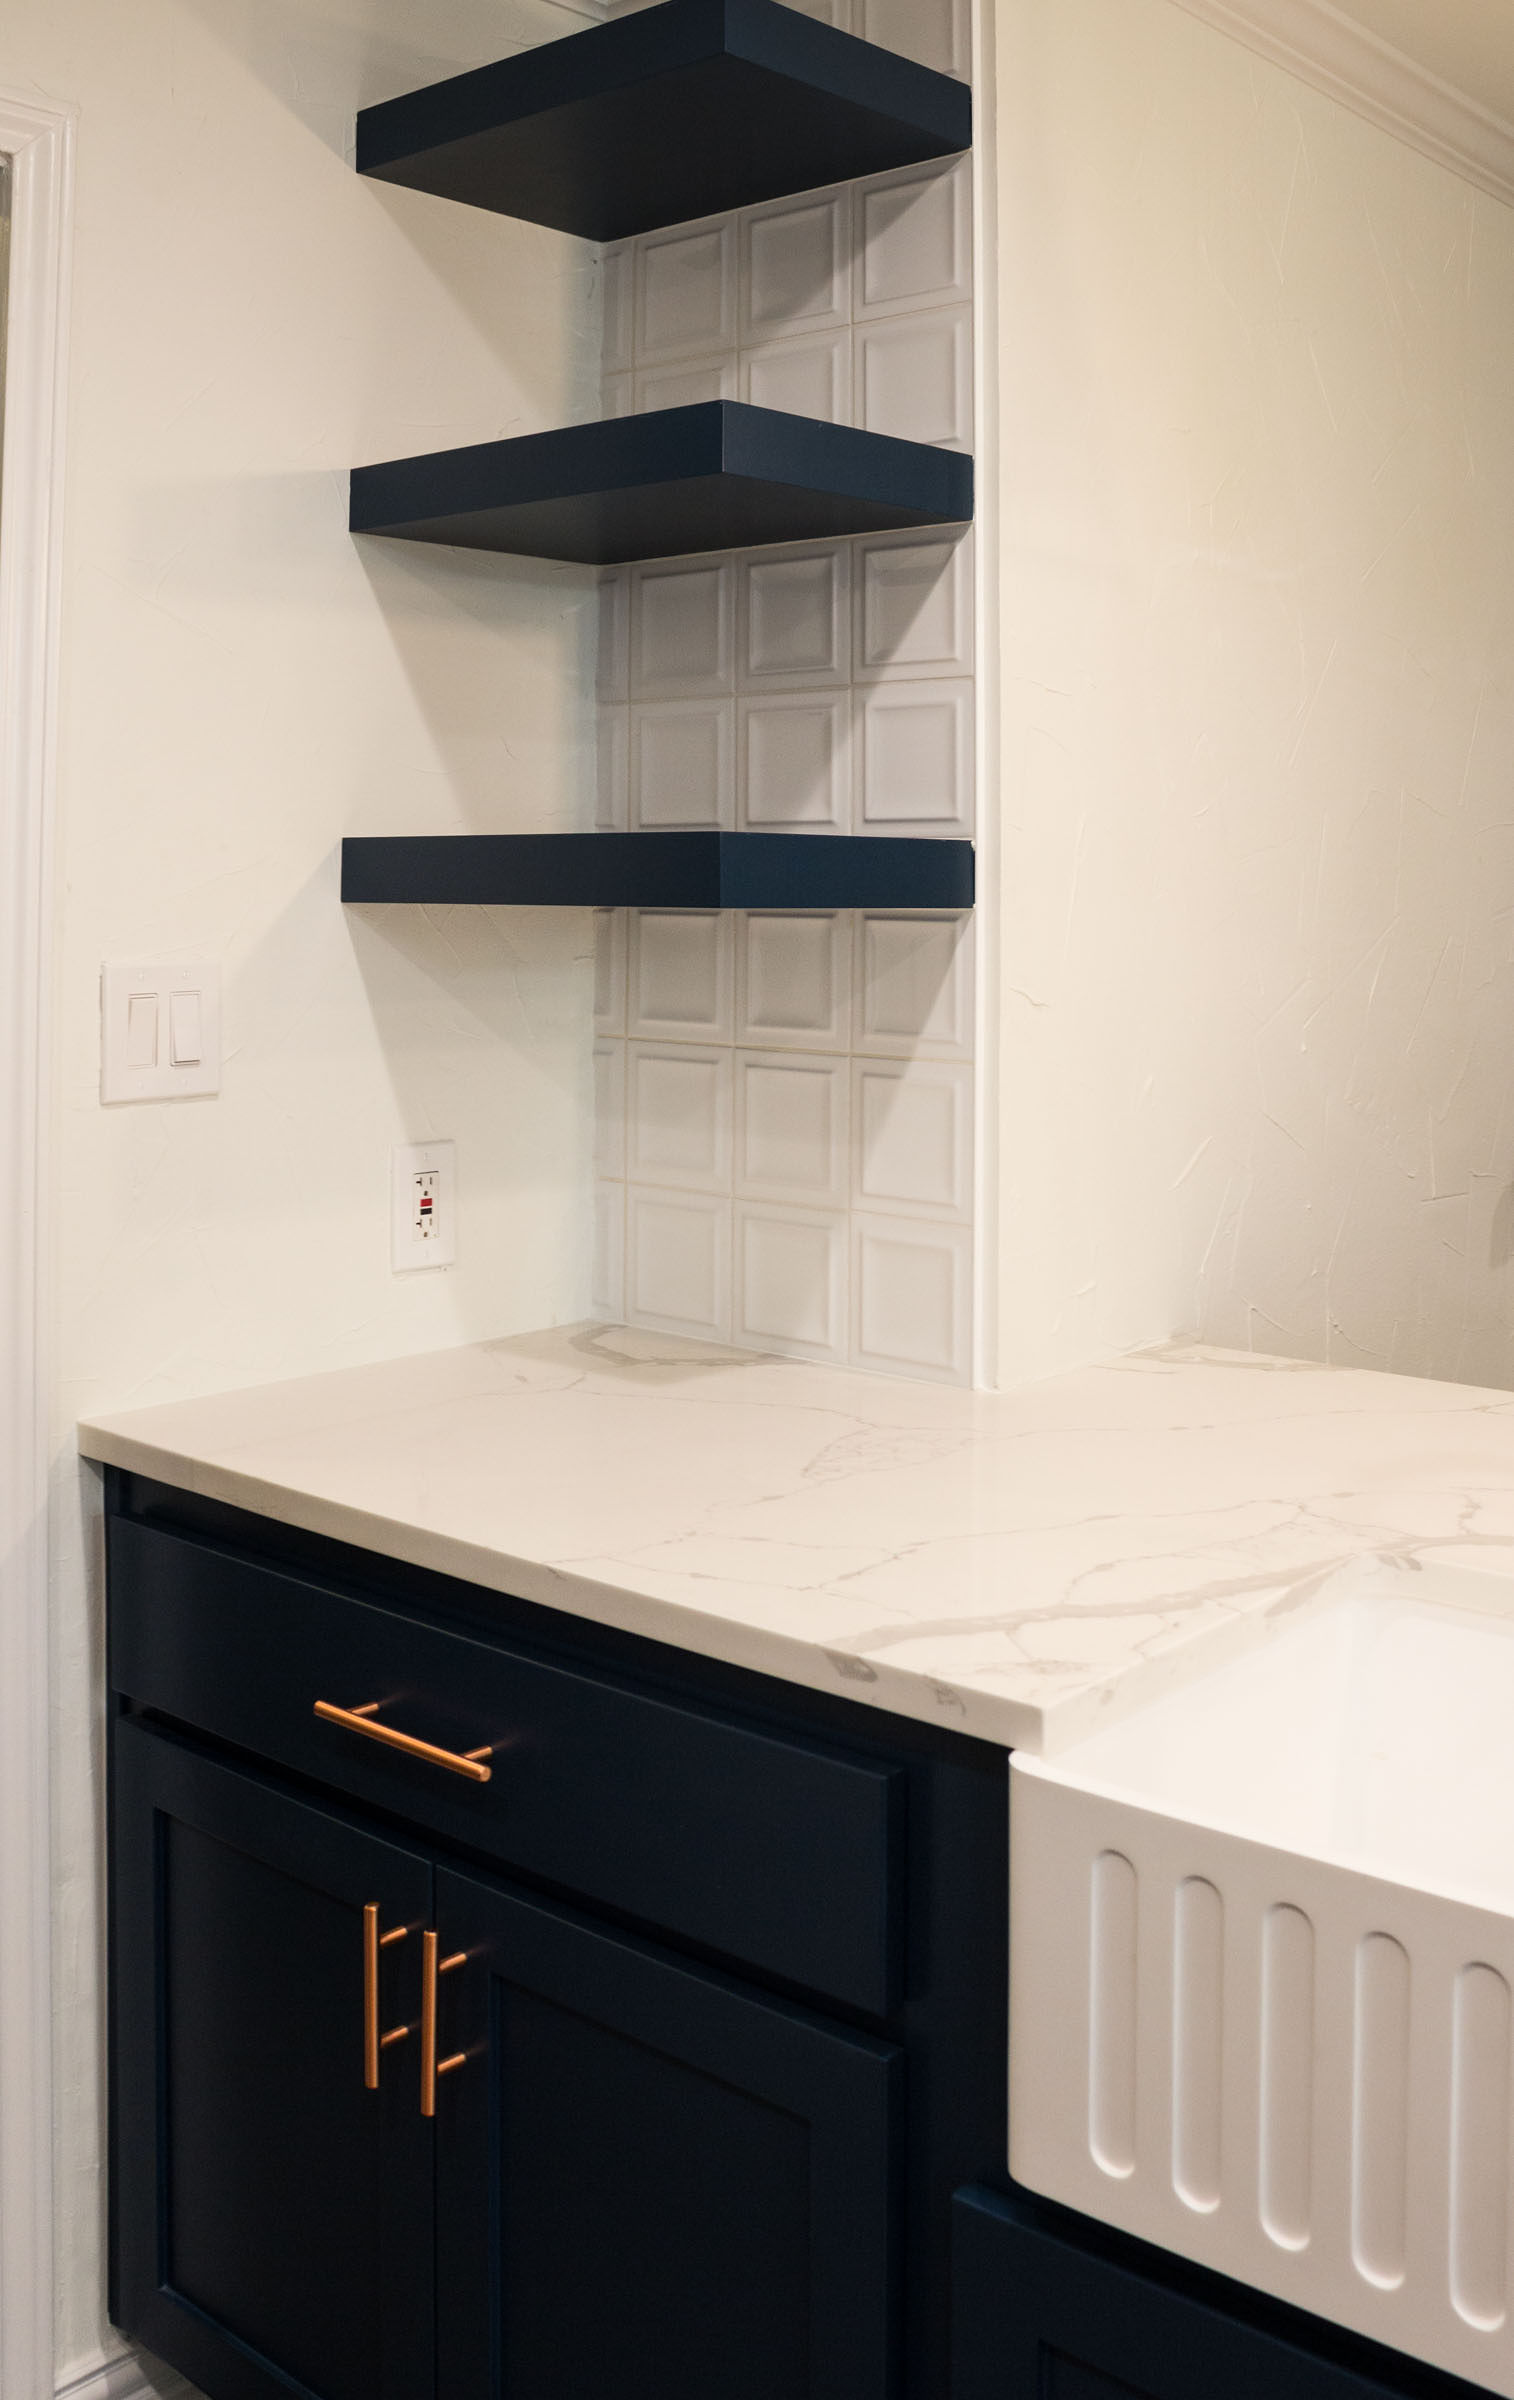 Navy floating shelves, styled kitchen remodel with navy and copper tones